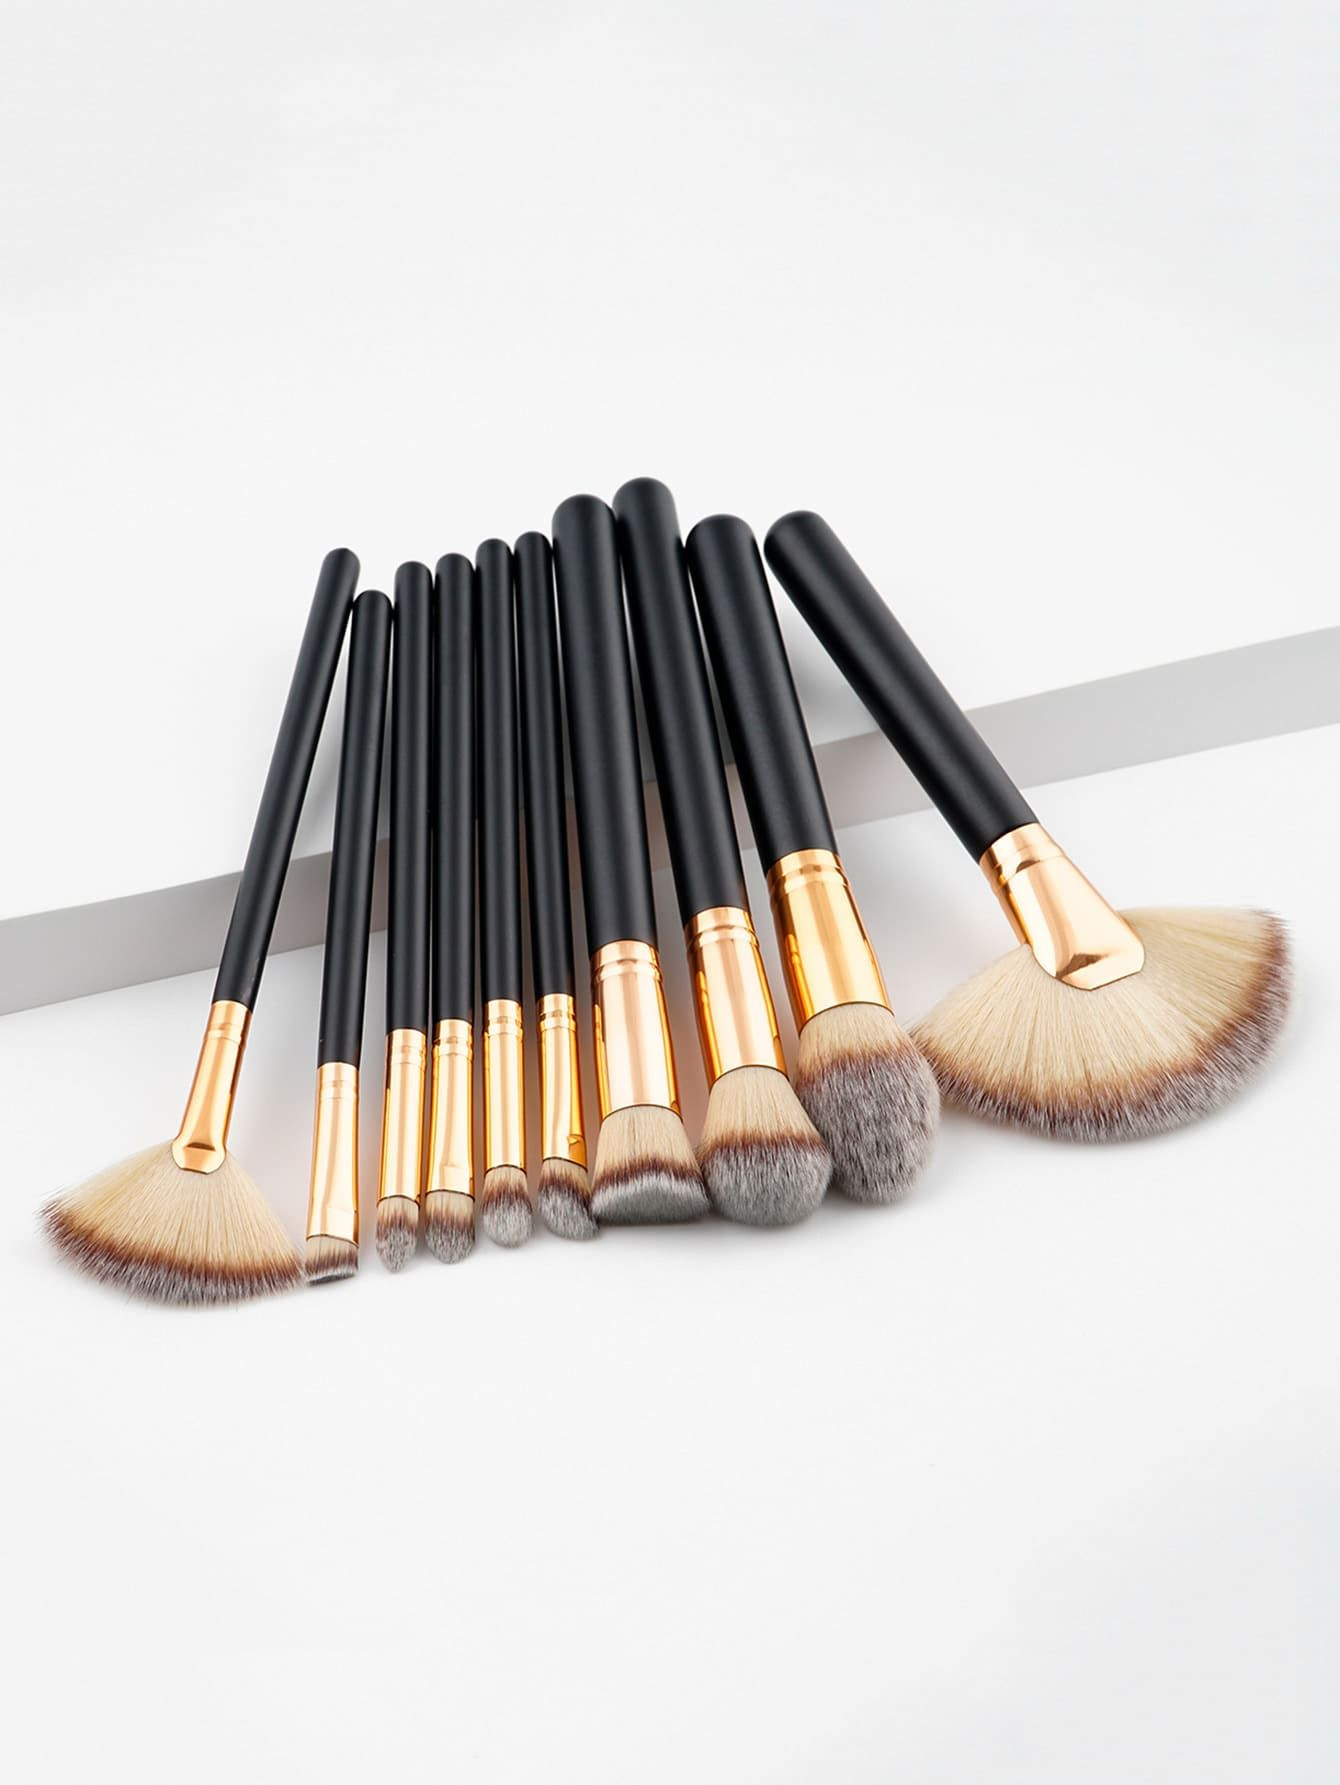 Two Tone Handle Makeup Brush Set 10pcs Makeup brush set